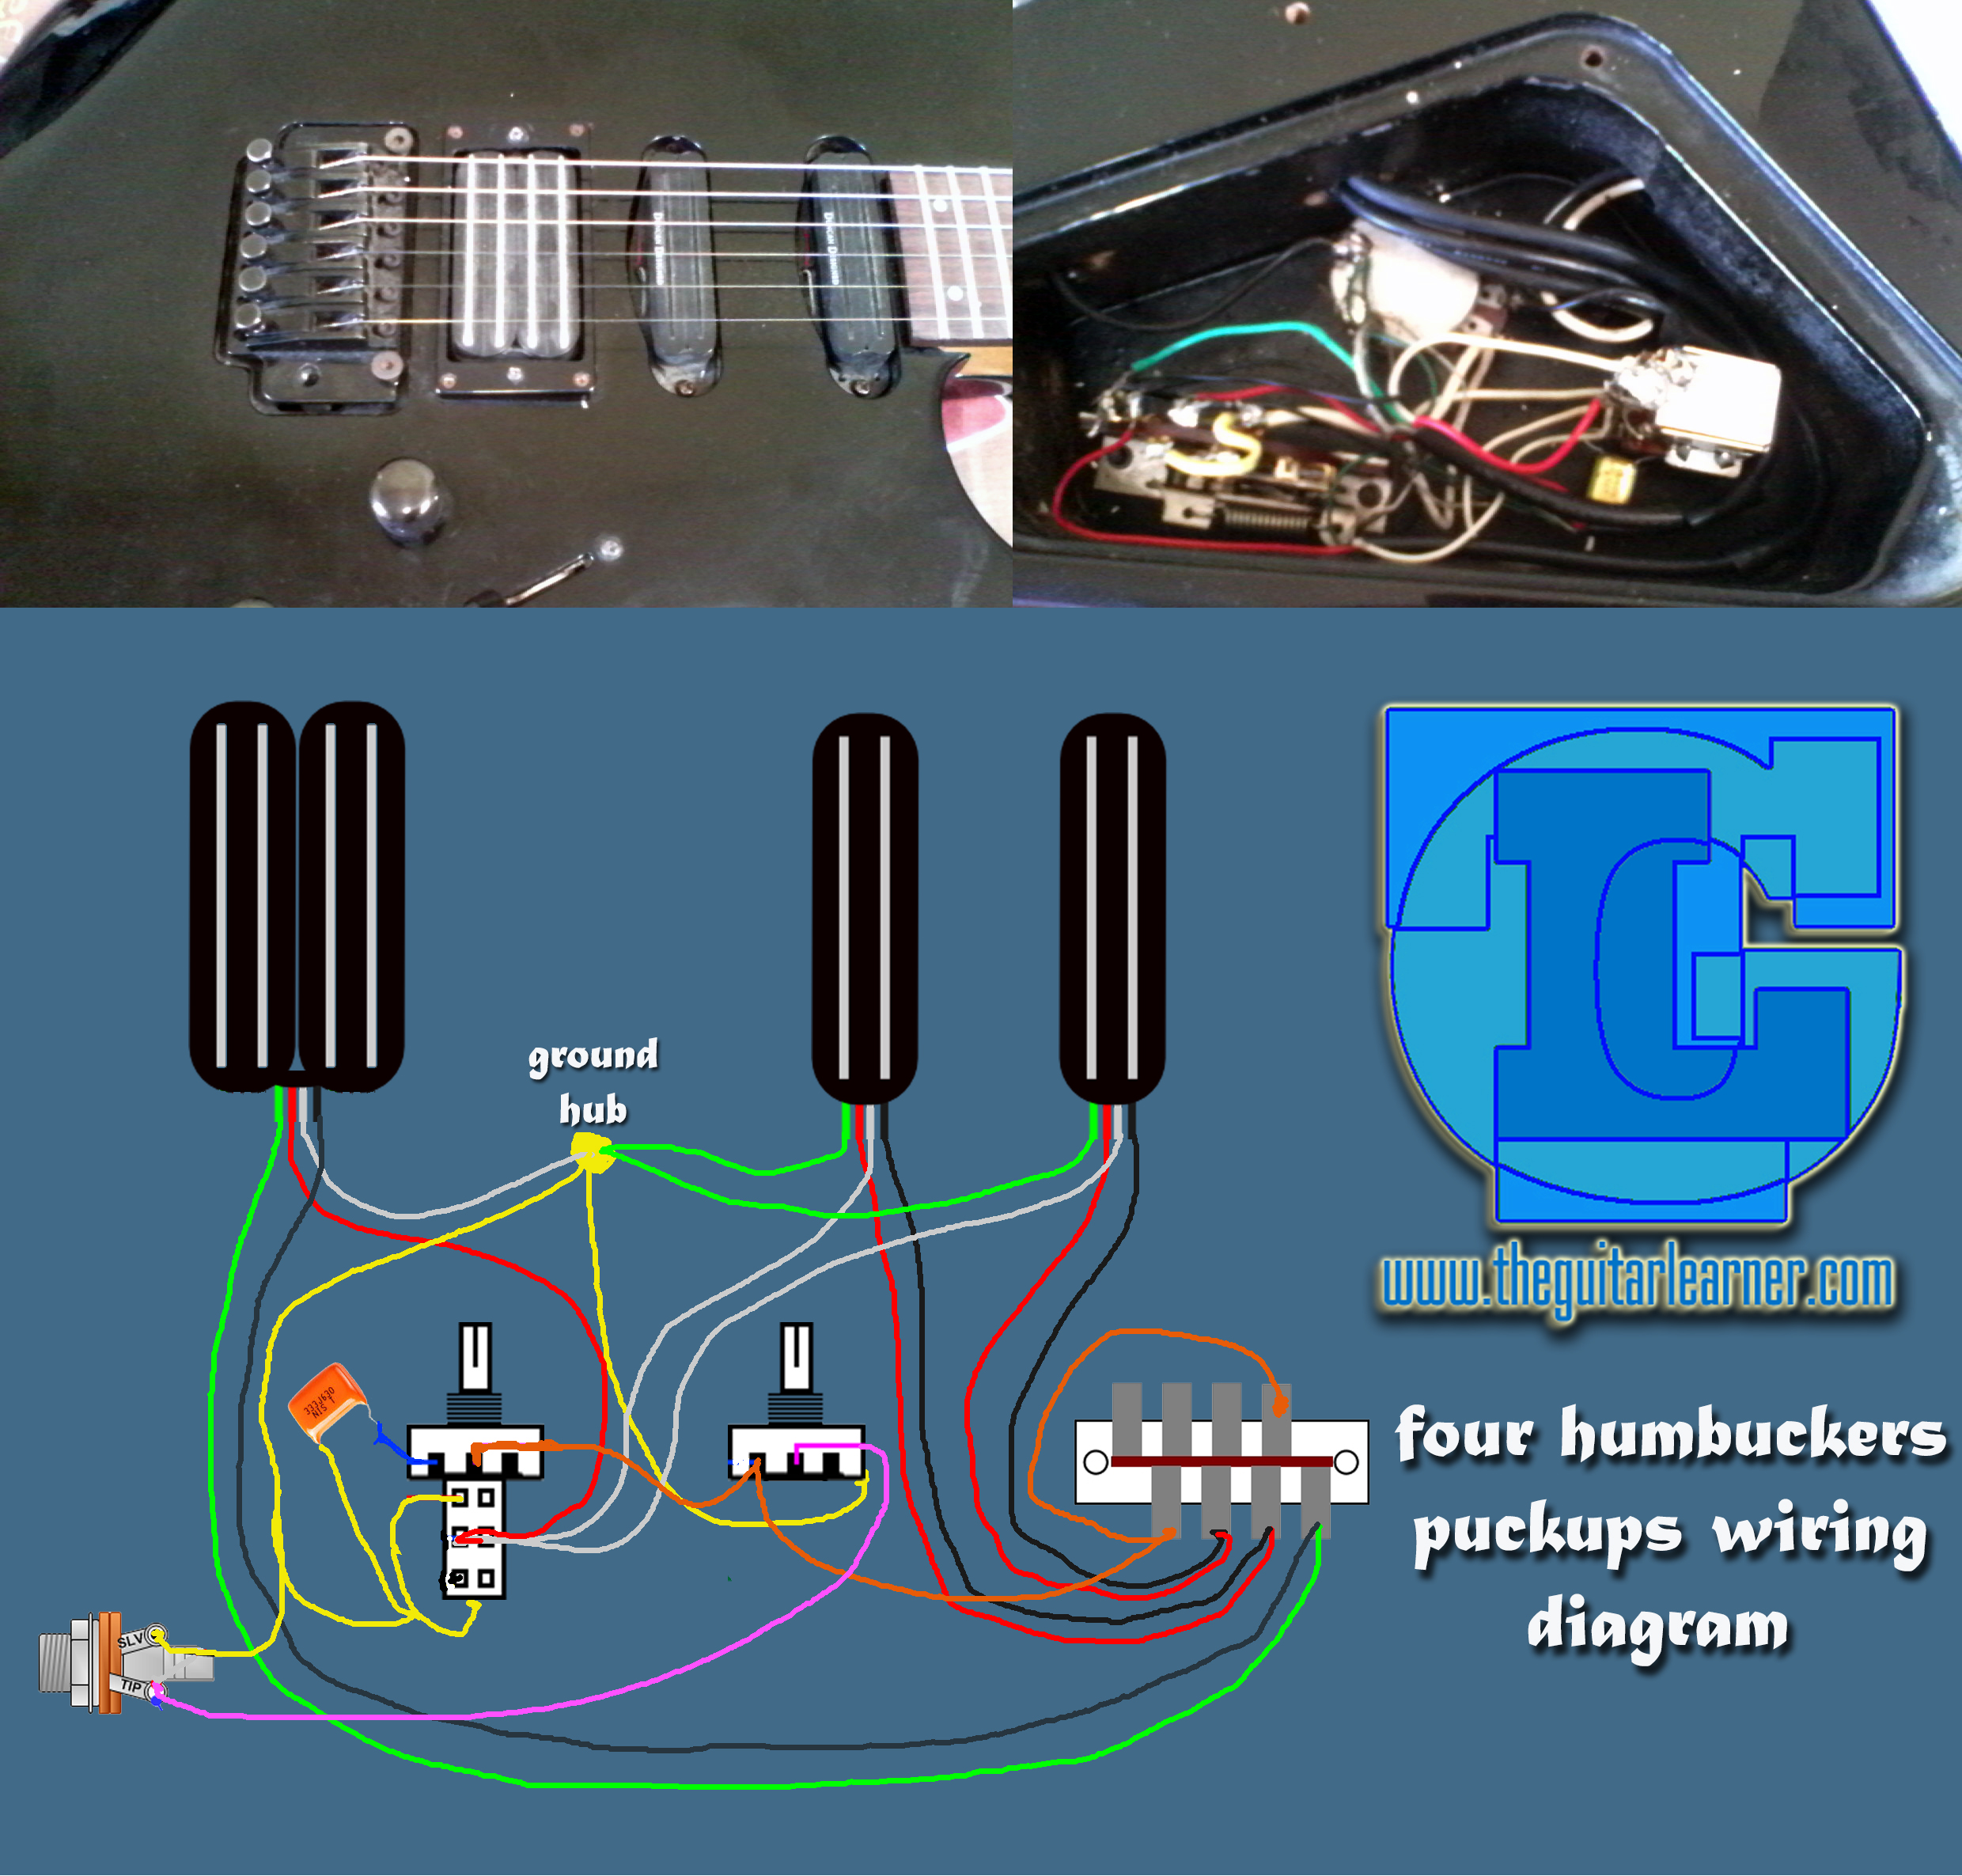 four humbuckers pickup wiring diagram hotrails and quadrail four humbuckers pickup wiring diagram hotrails and quadrail  at crackthecode.co